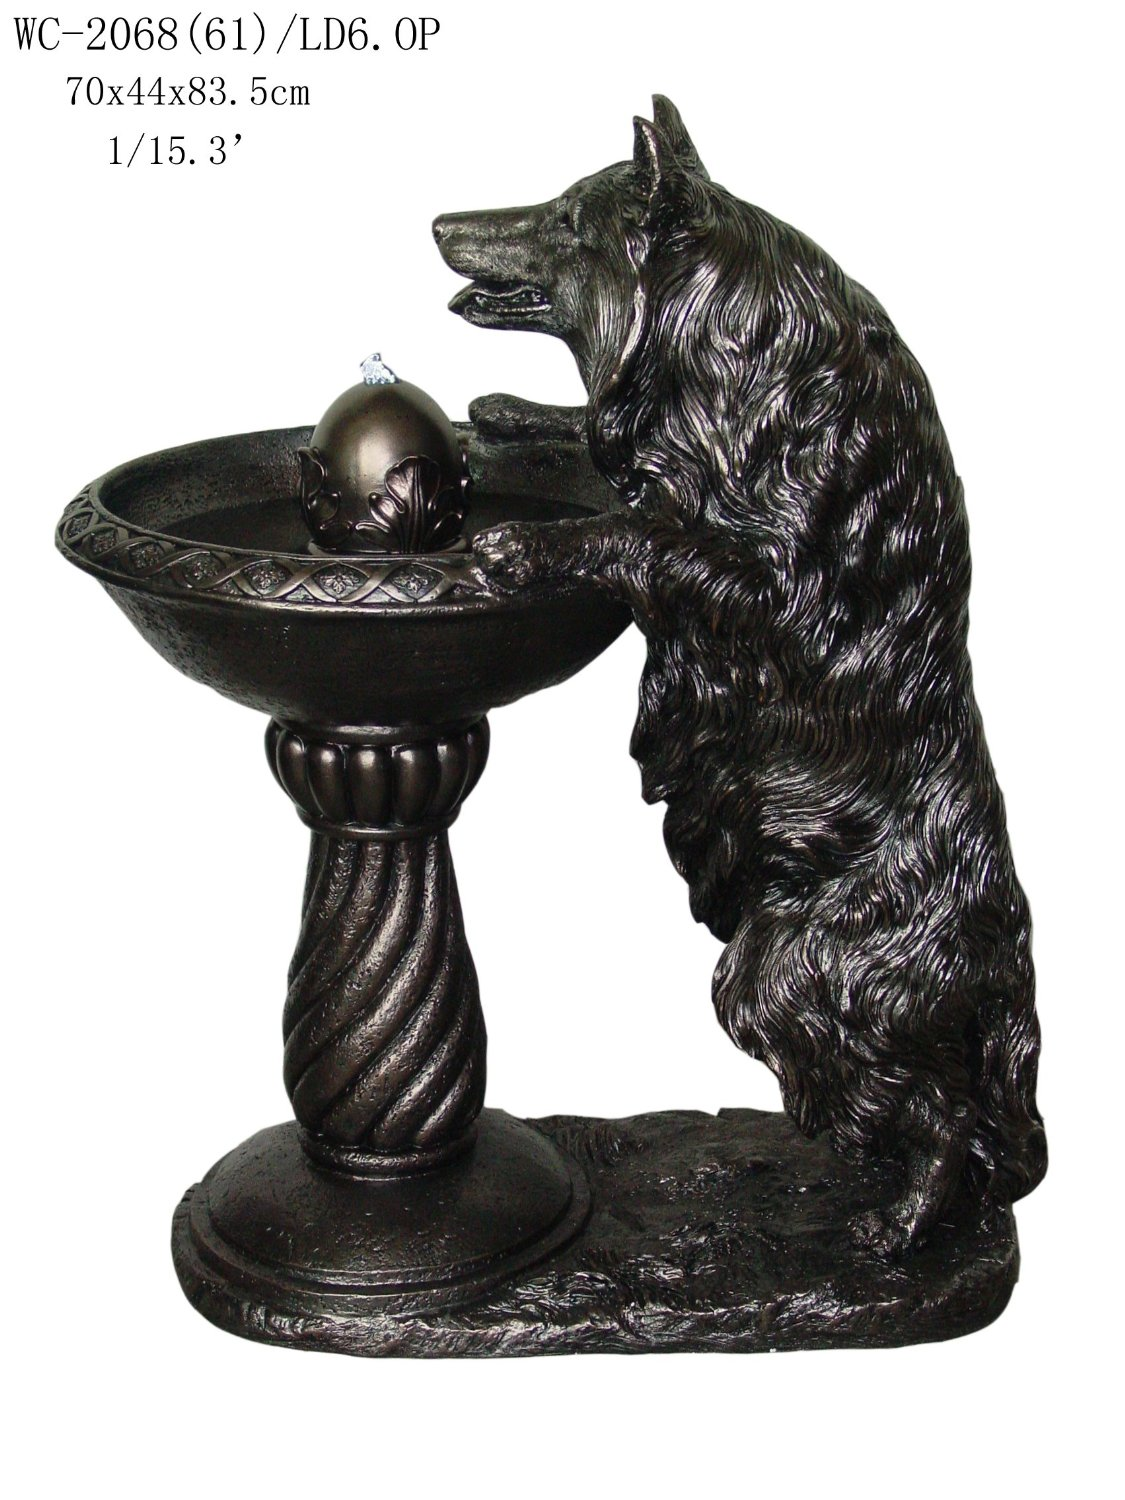 Border Collie Dog Sculpture Statue Water Fountain